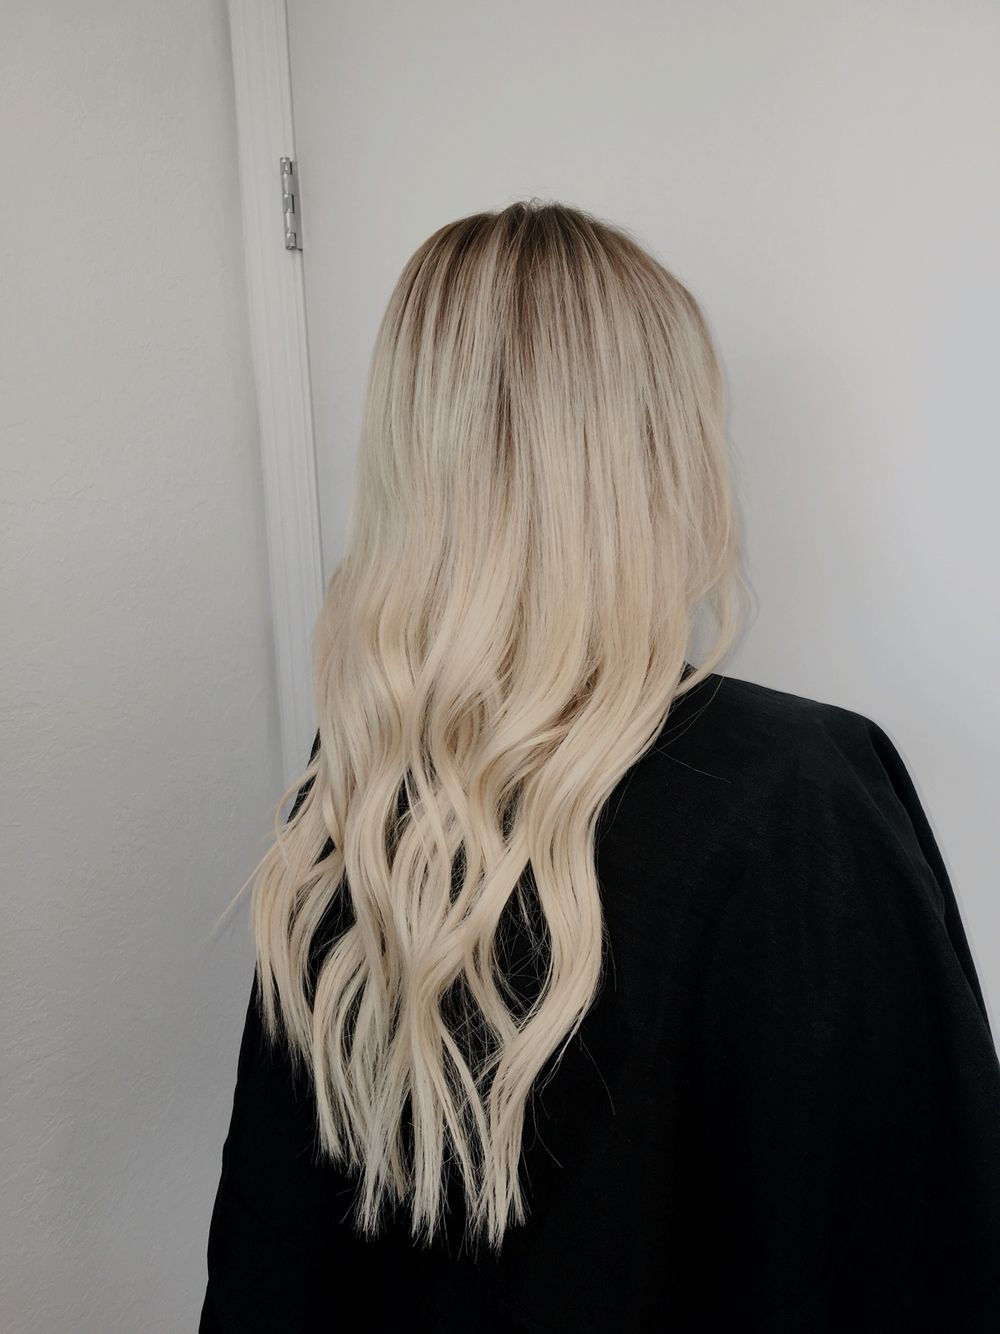 Top knot extensions hair extensions hairstylist clip in top knot extensions hair extensions hairstylist clip in extensions pmusecretfo Images